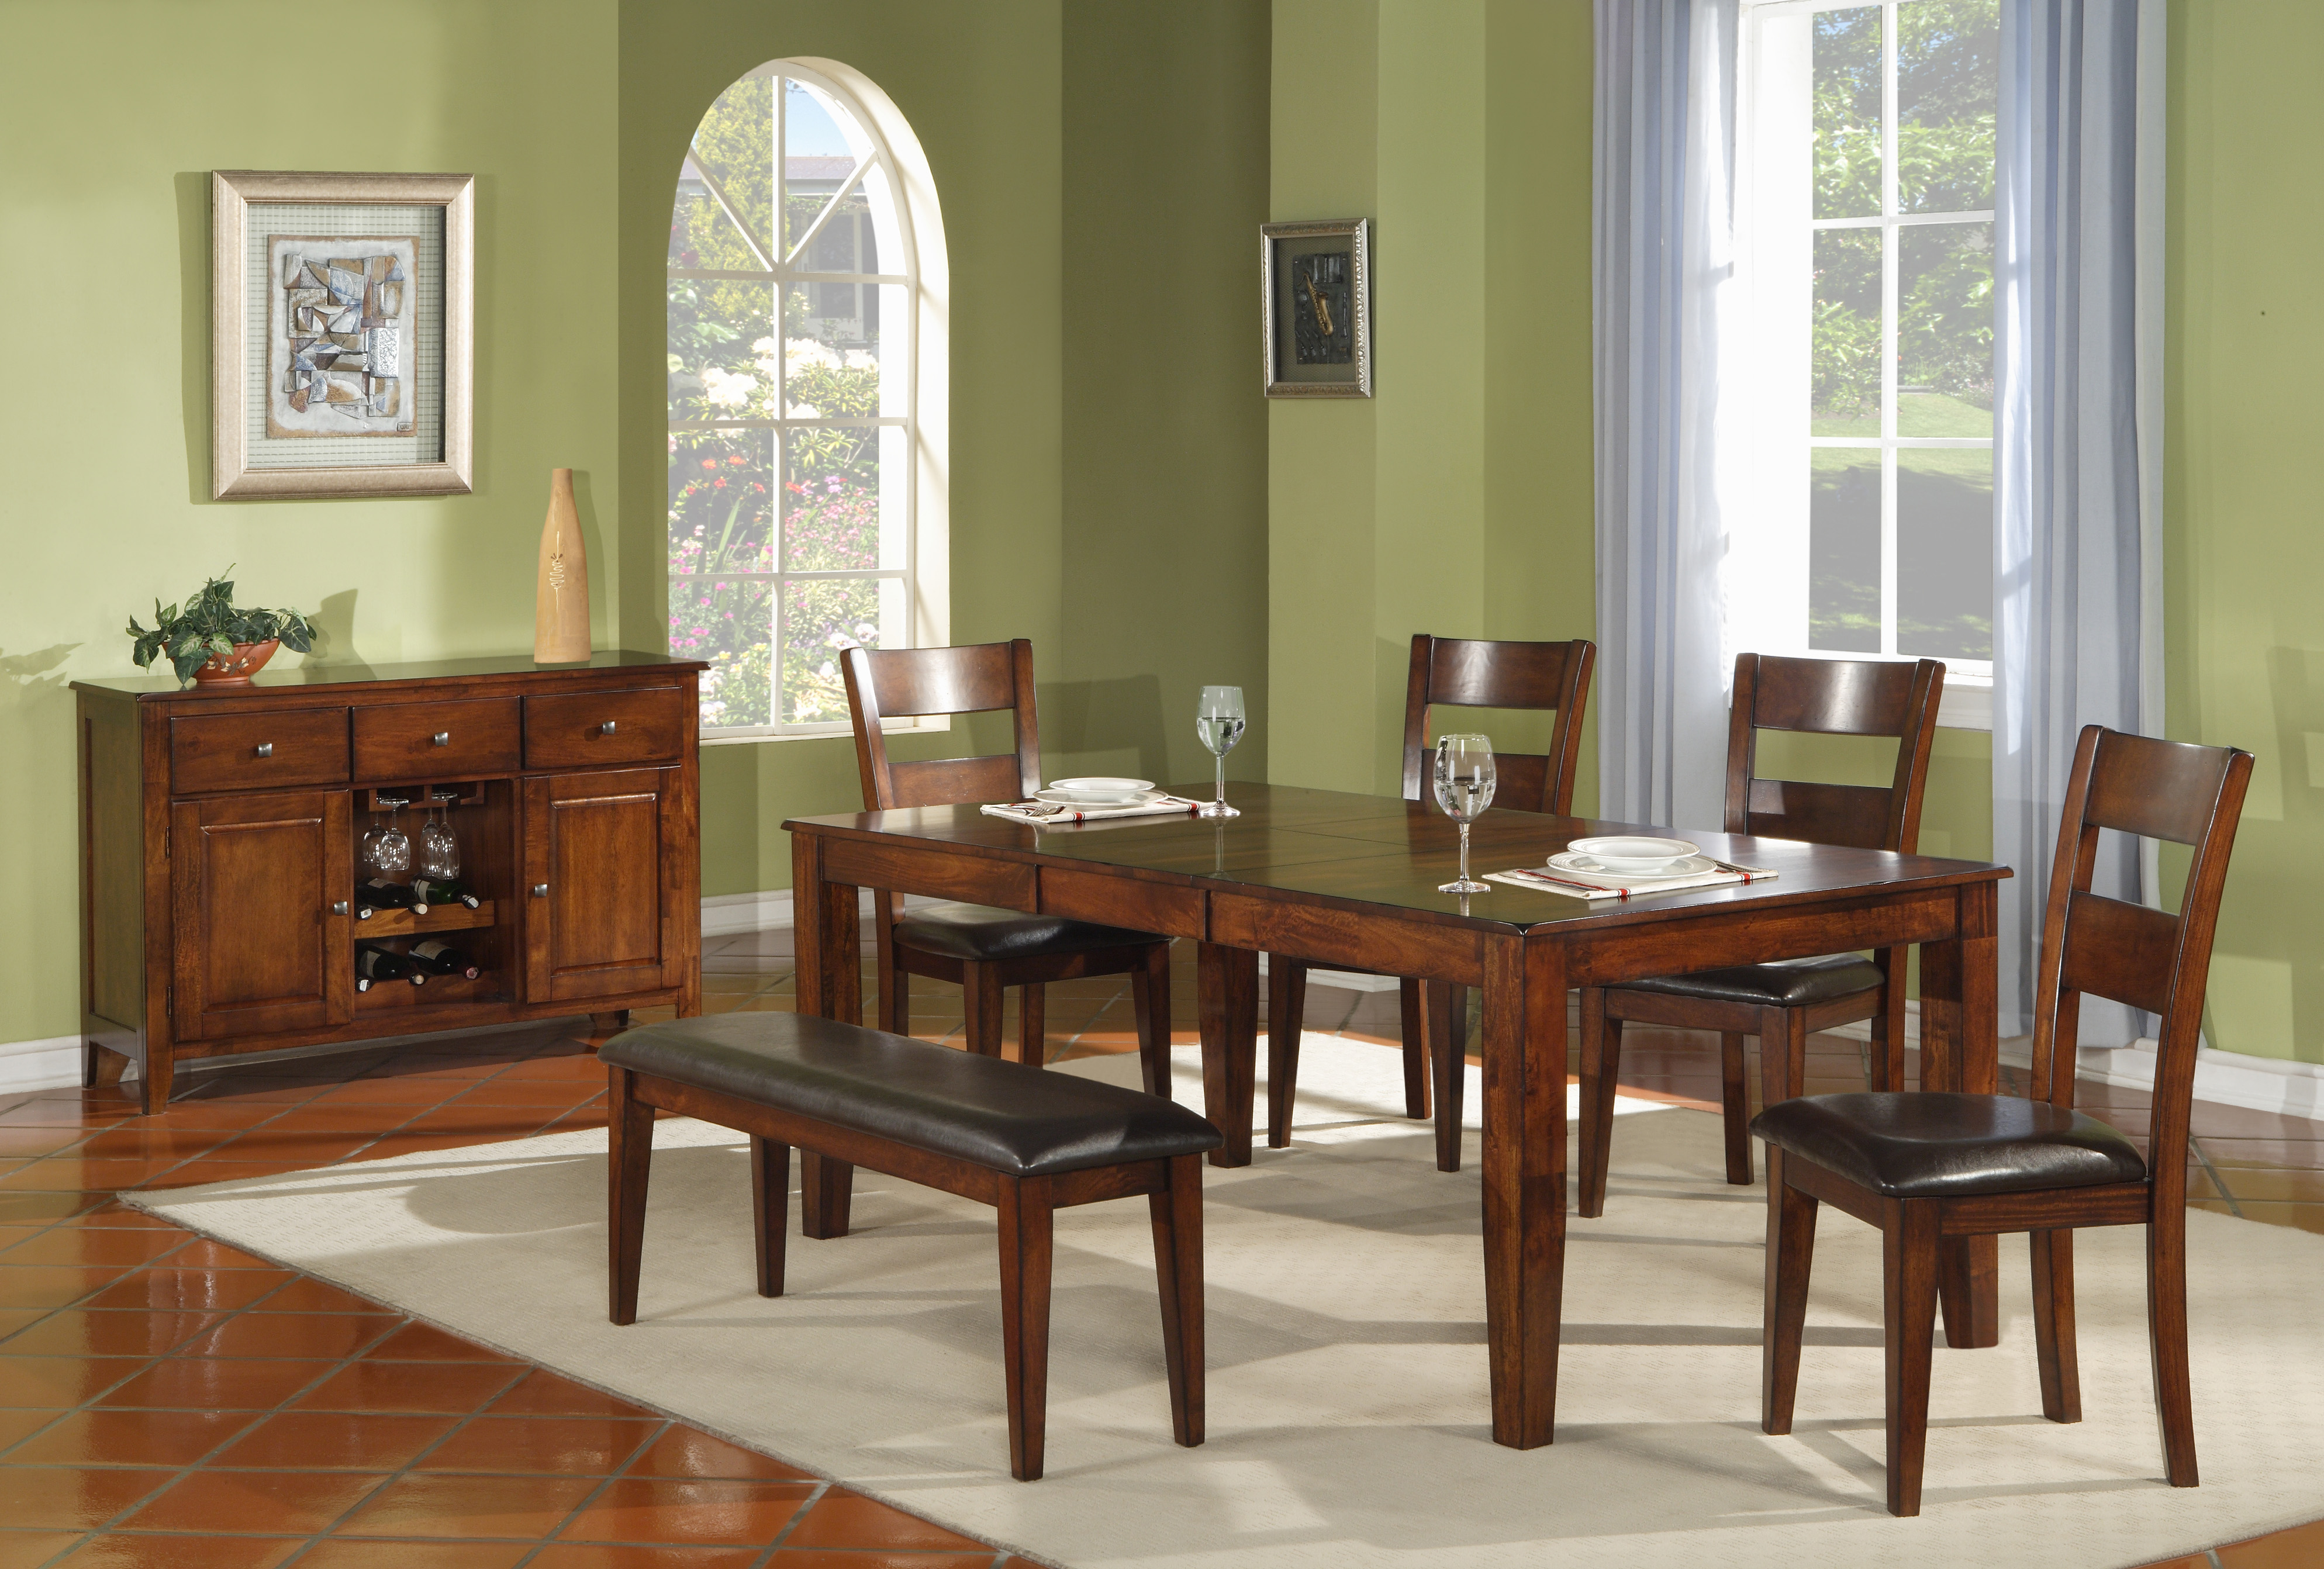 hh1279-dining-with-server